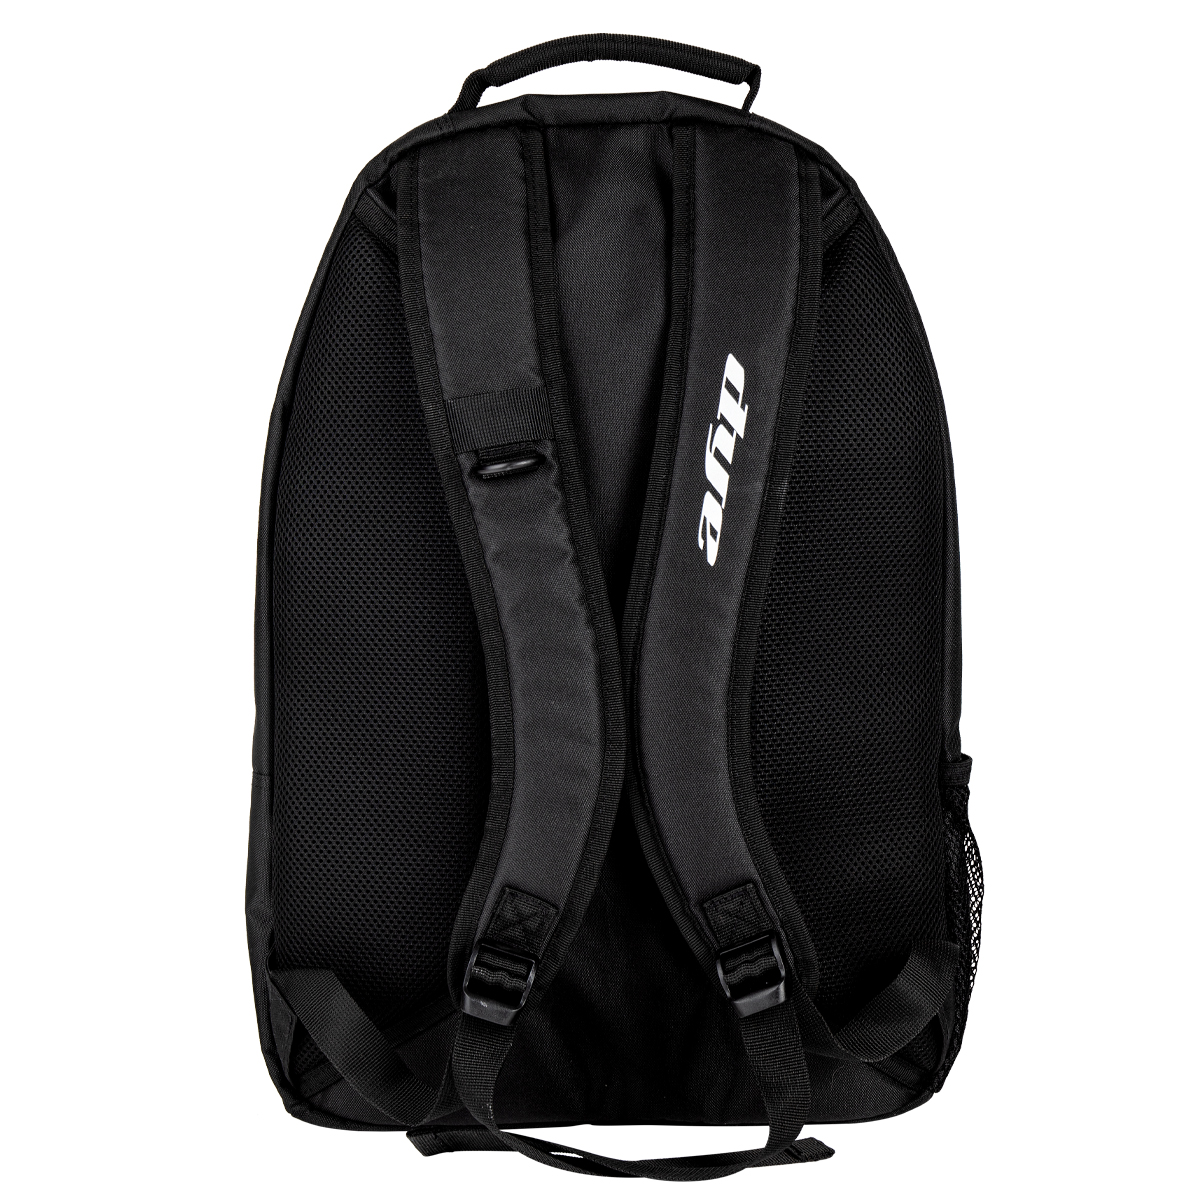 VE2057-1 Sac à dos Fuser Backpack 25L - VE2057